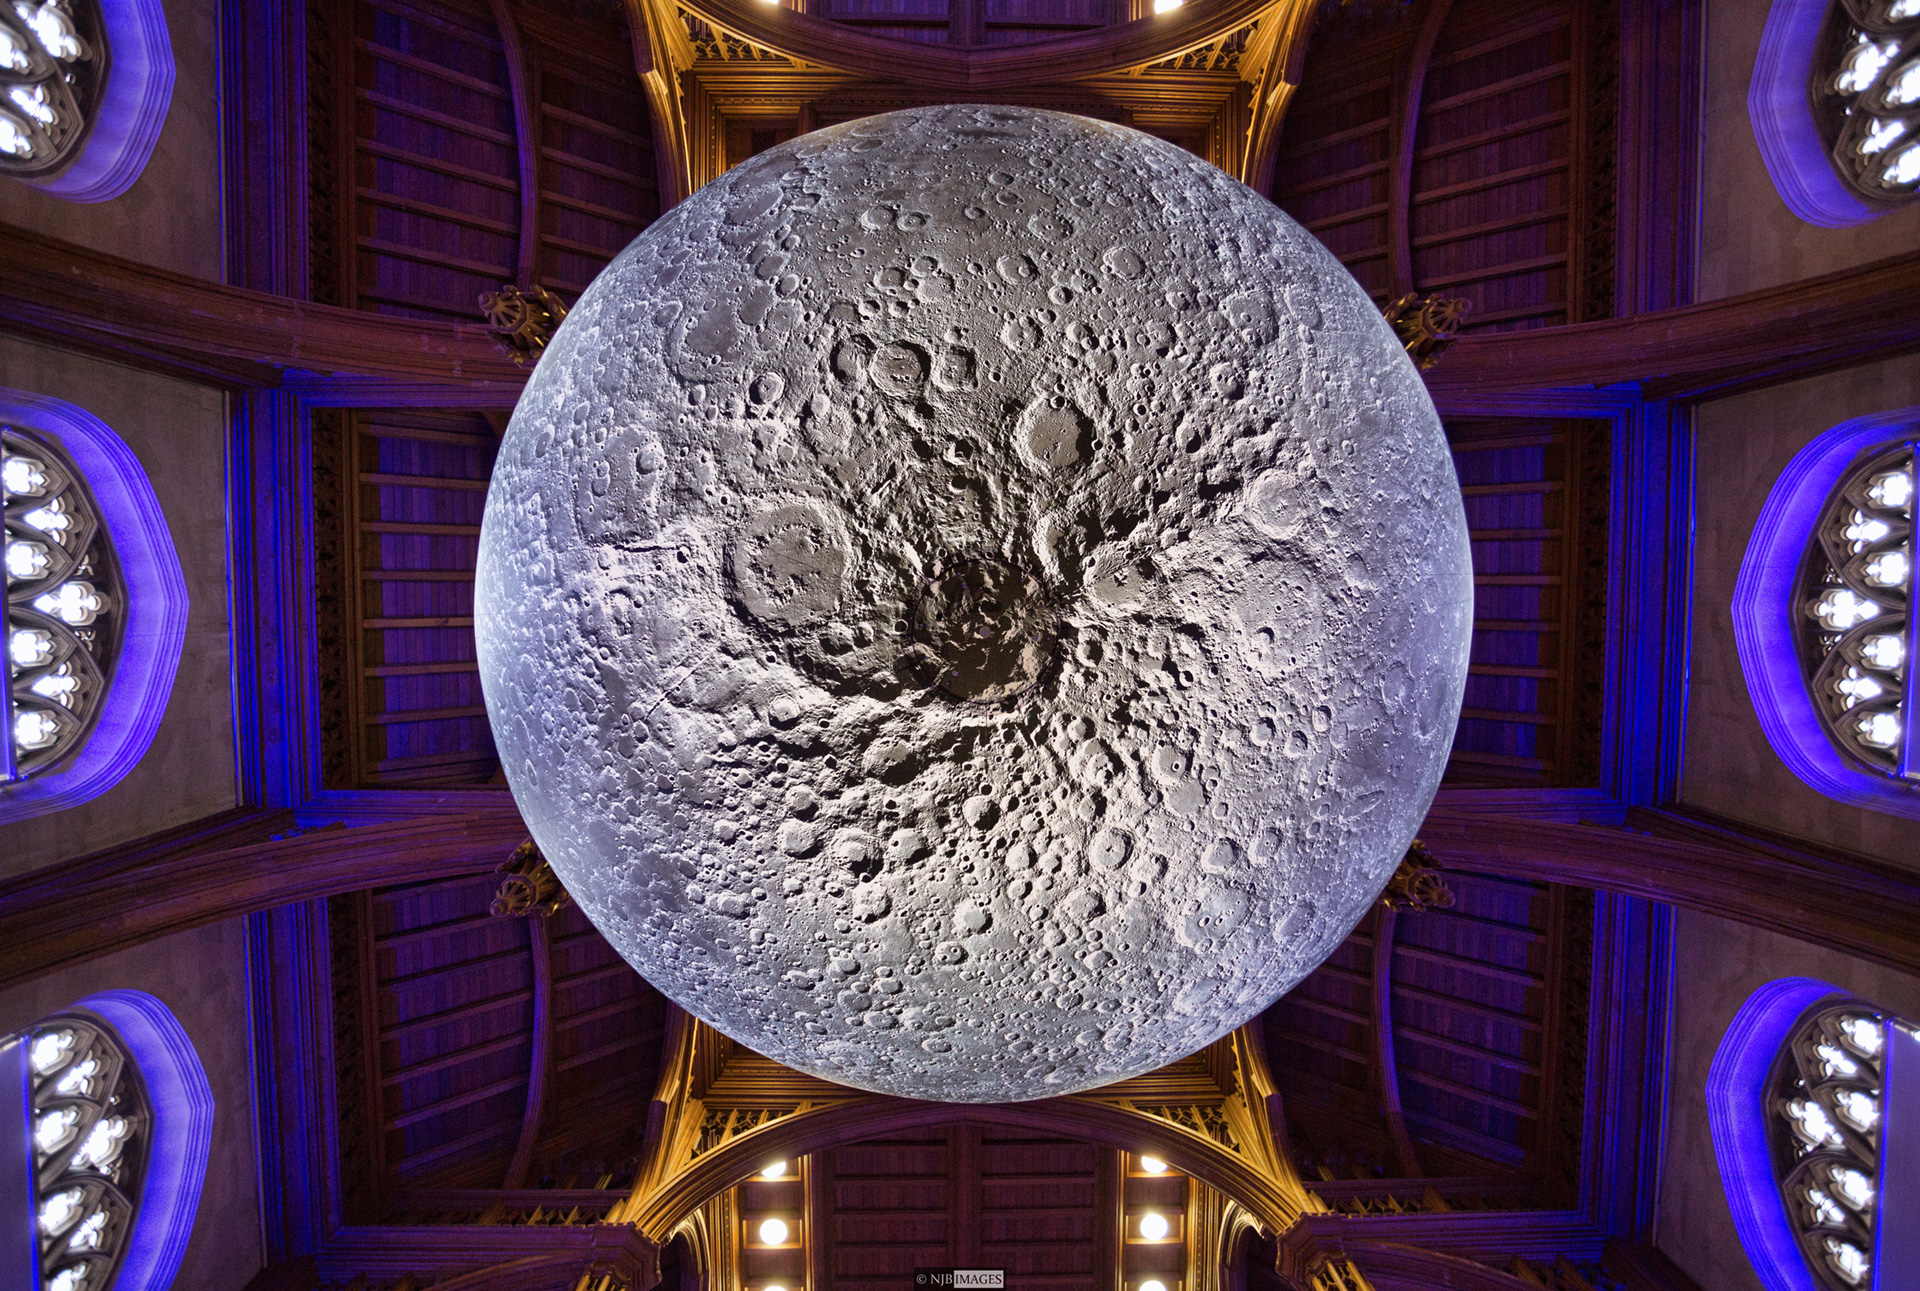 The touring artwork Museum of the Moon| Museum of the Moon| Luke Jerram| STIR